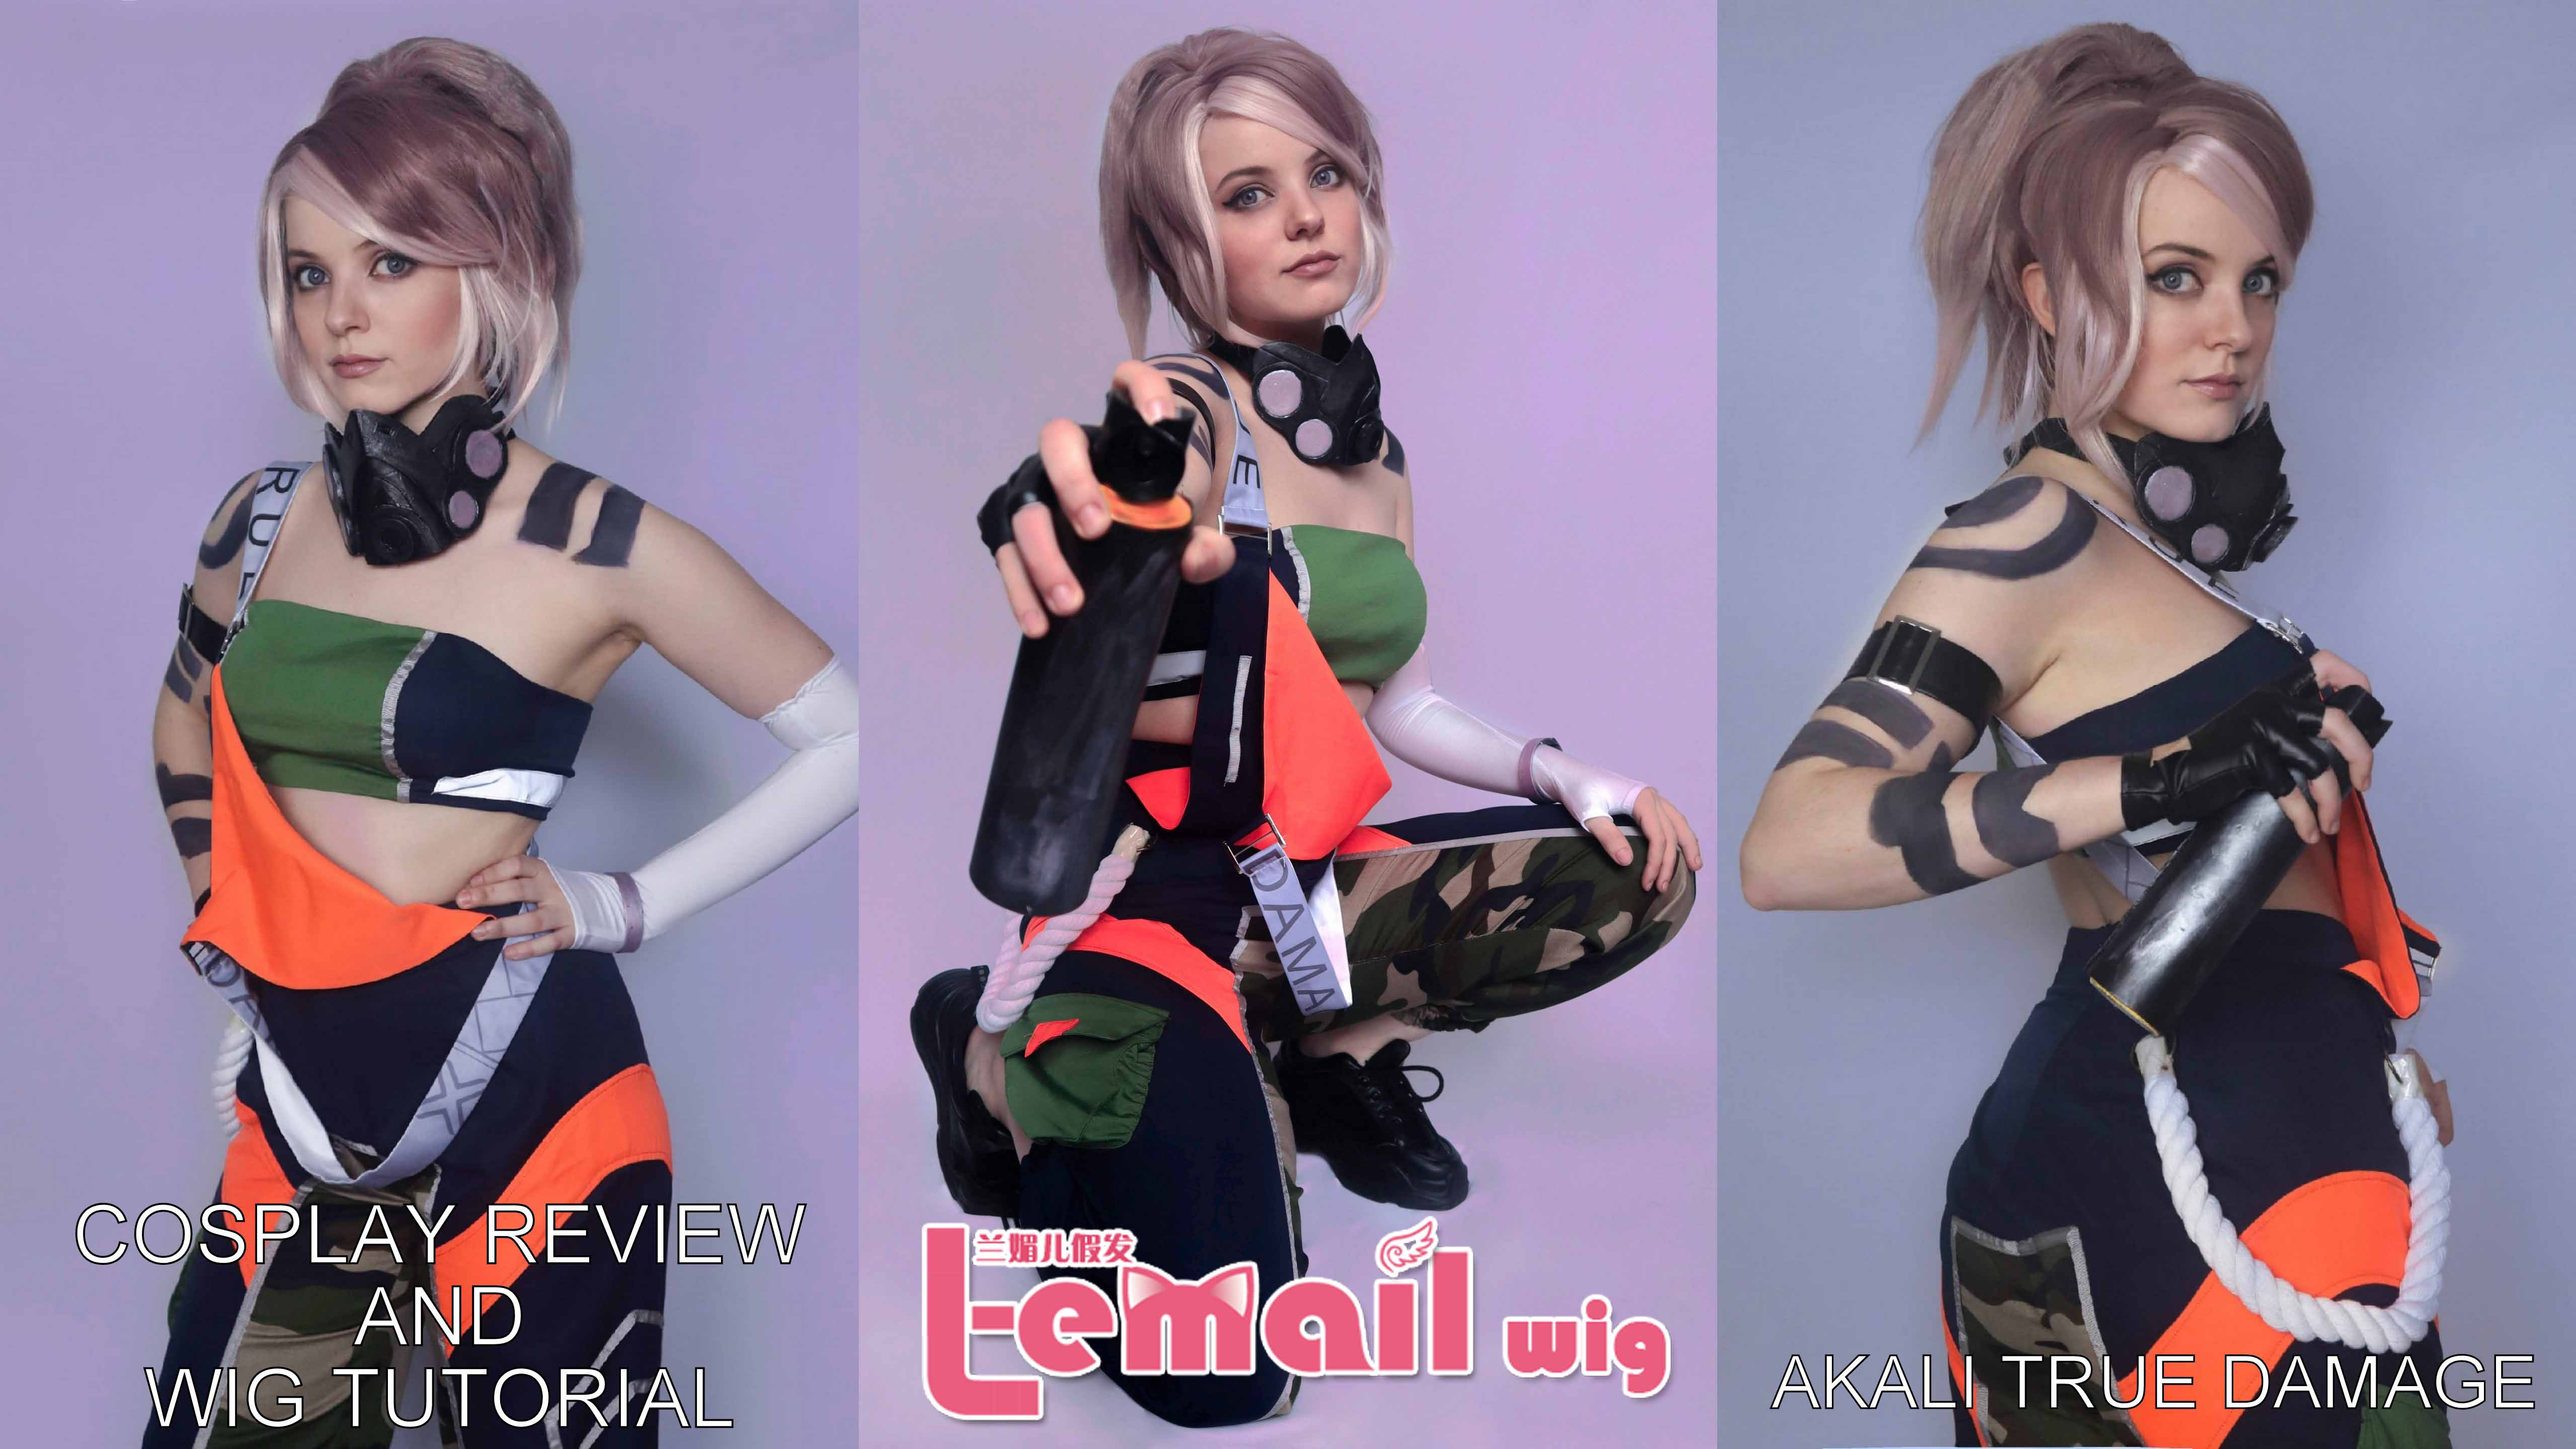 Cosplay & Wig Review: Akali True Damage from L-email wigs